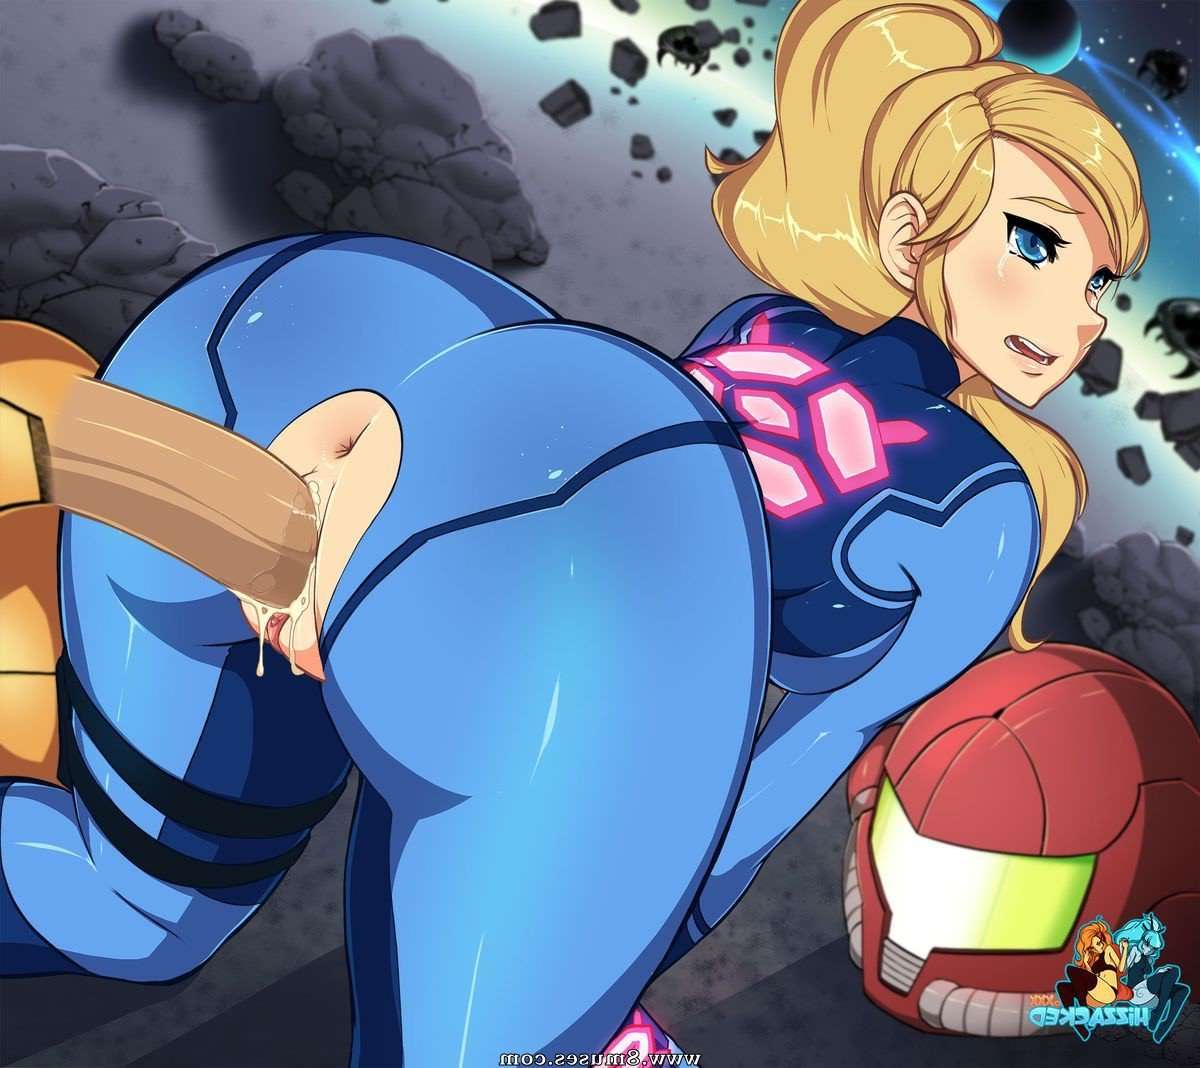 Hizzacked-Comics/Zero-Suit-Samus Zero_Suit_Samus__8muses_-_Sex_and_Porn_Comics_22.jpg